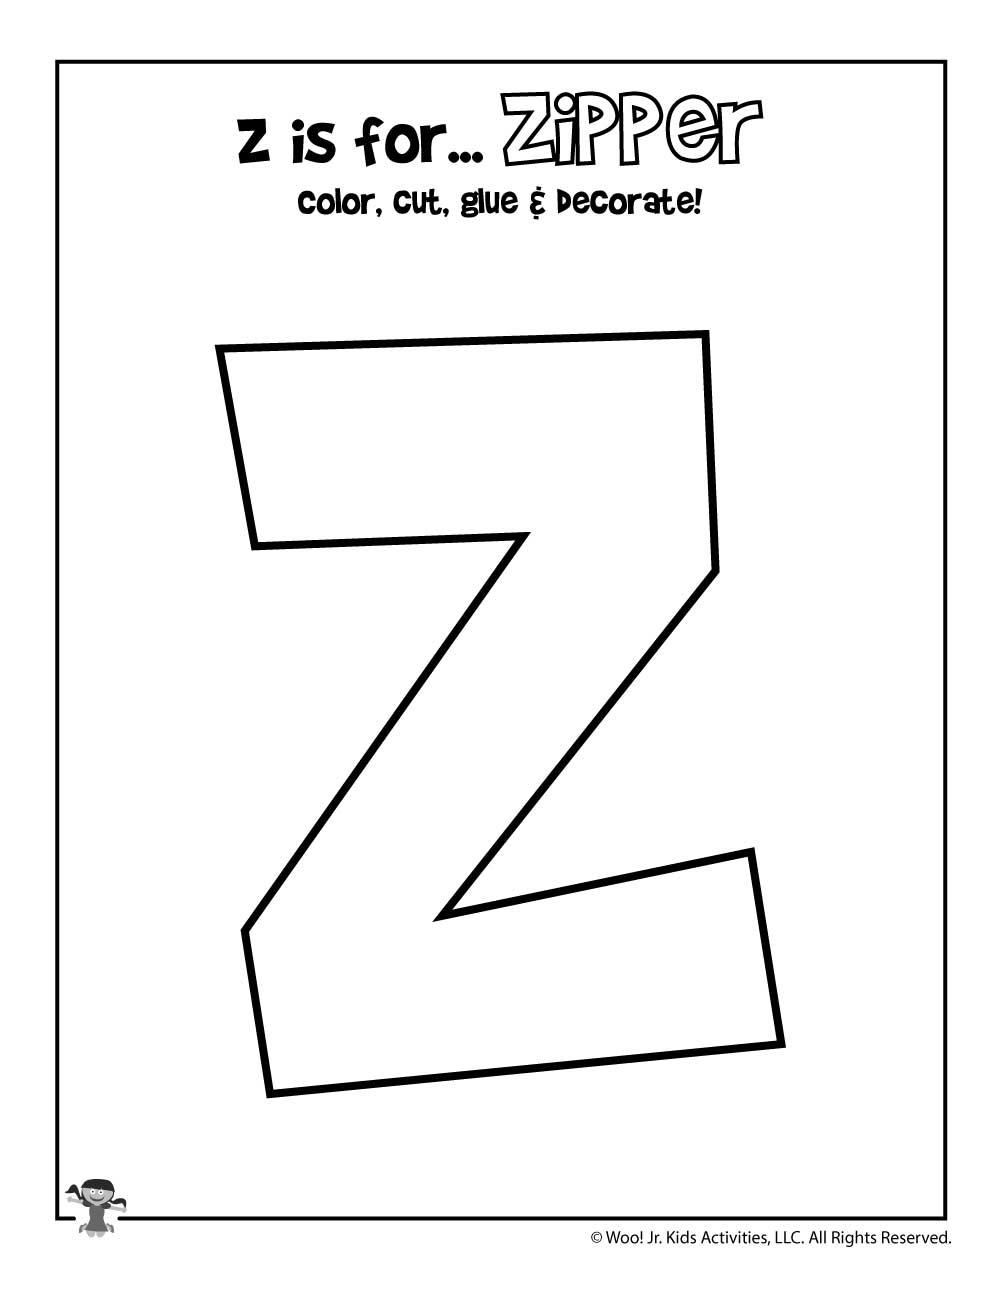 image about Letter Z Printable titled Printable Letter Z Craft Woo! Jr. Children Routines